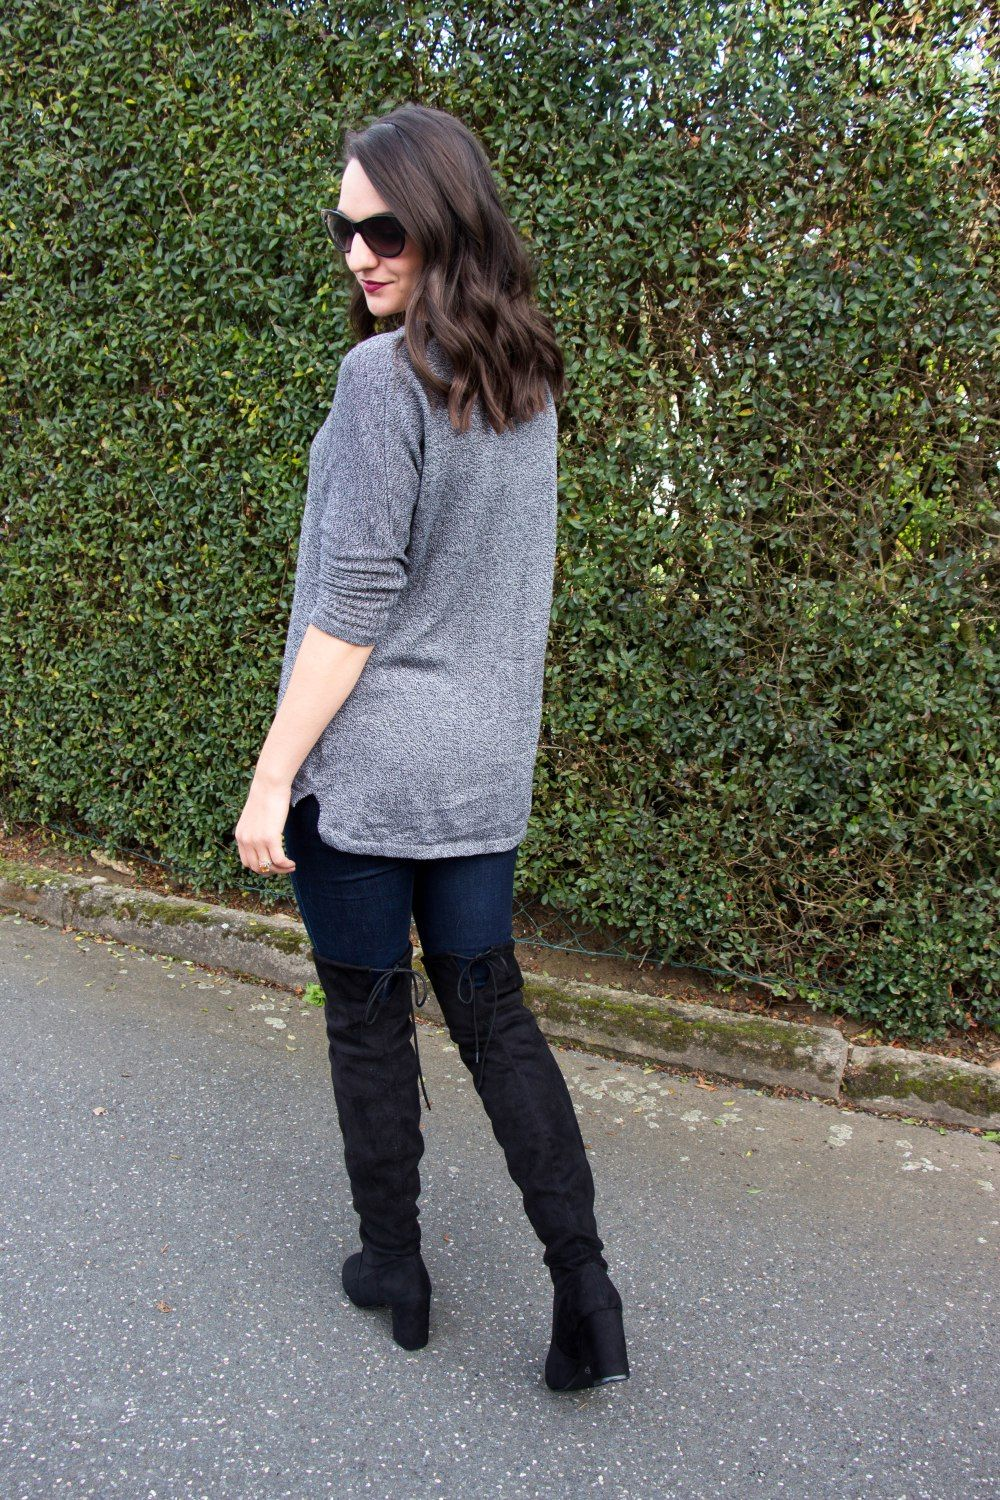 Over the Knee Black Boots for Fall with a Casual Sweater- Countdown to Friday